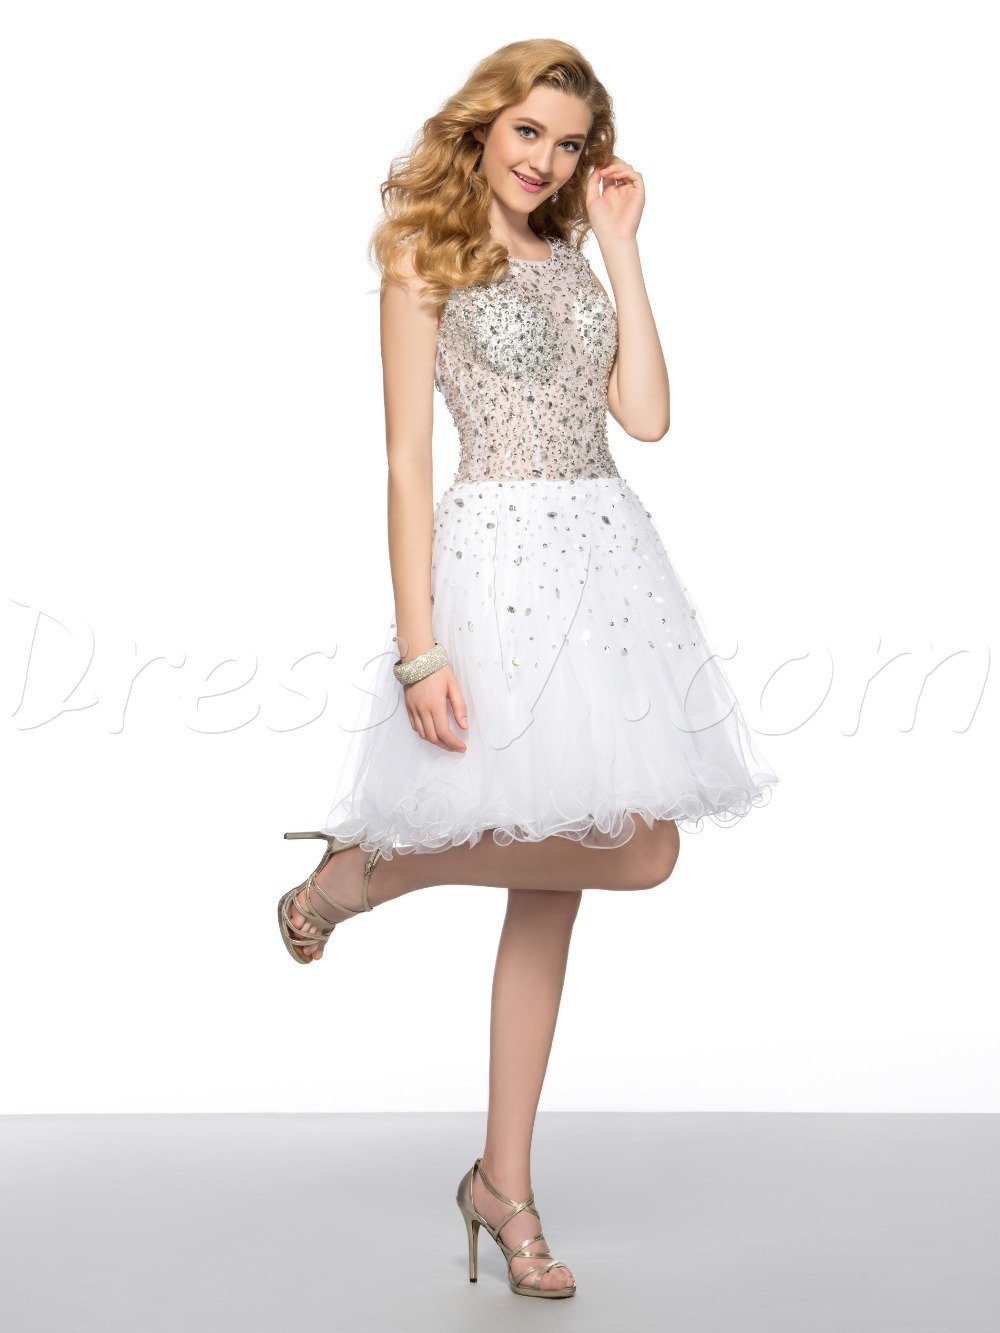 4229211b91d5f Dazzling Short White Cocktail Dresses Homecoming Dresses Scoop Sheer ...